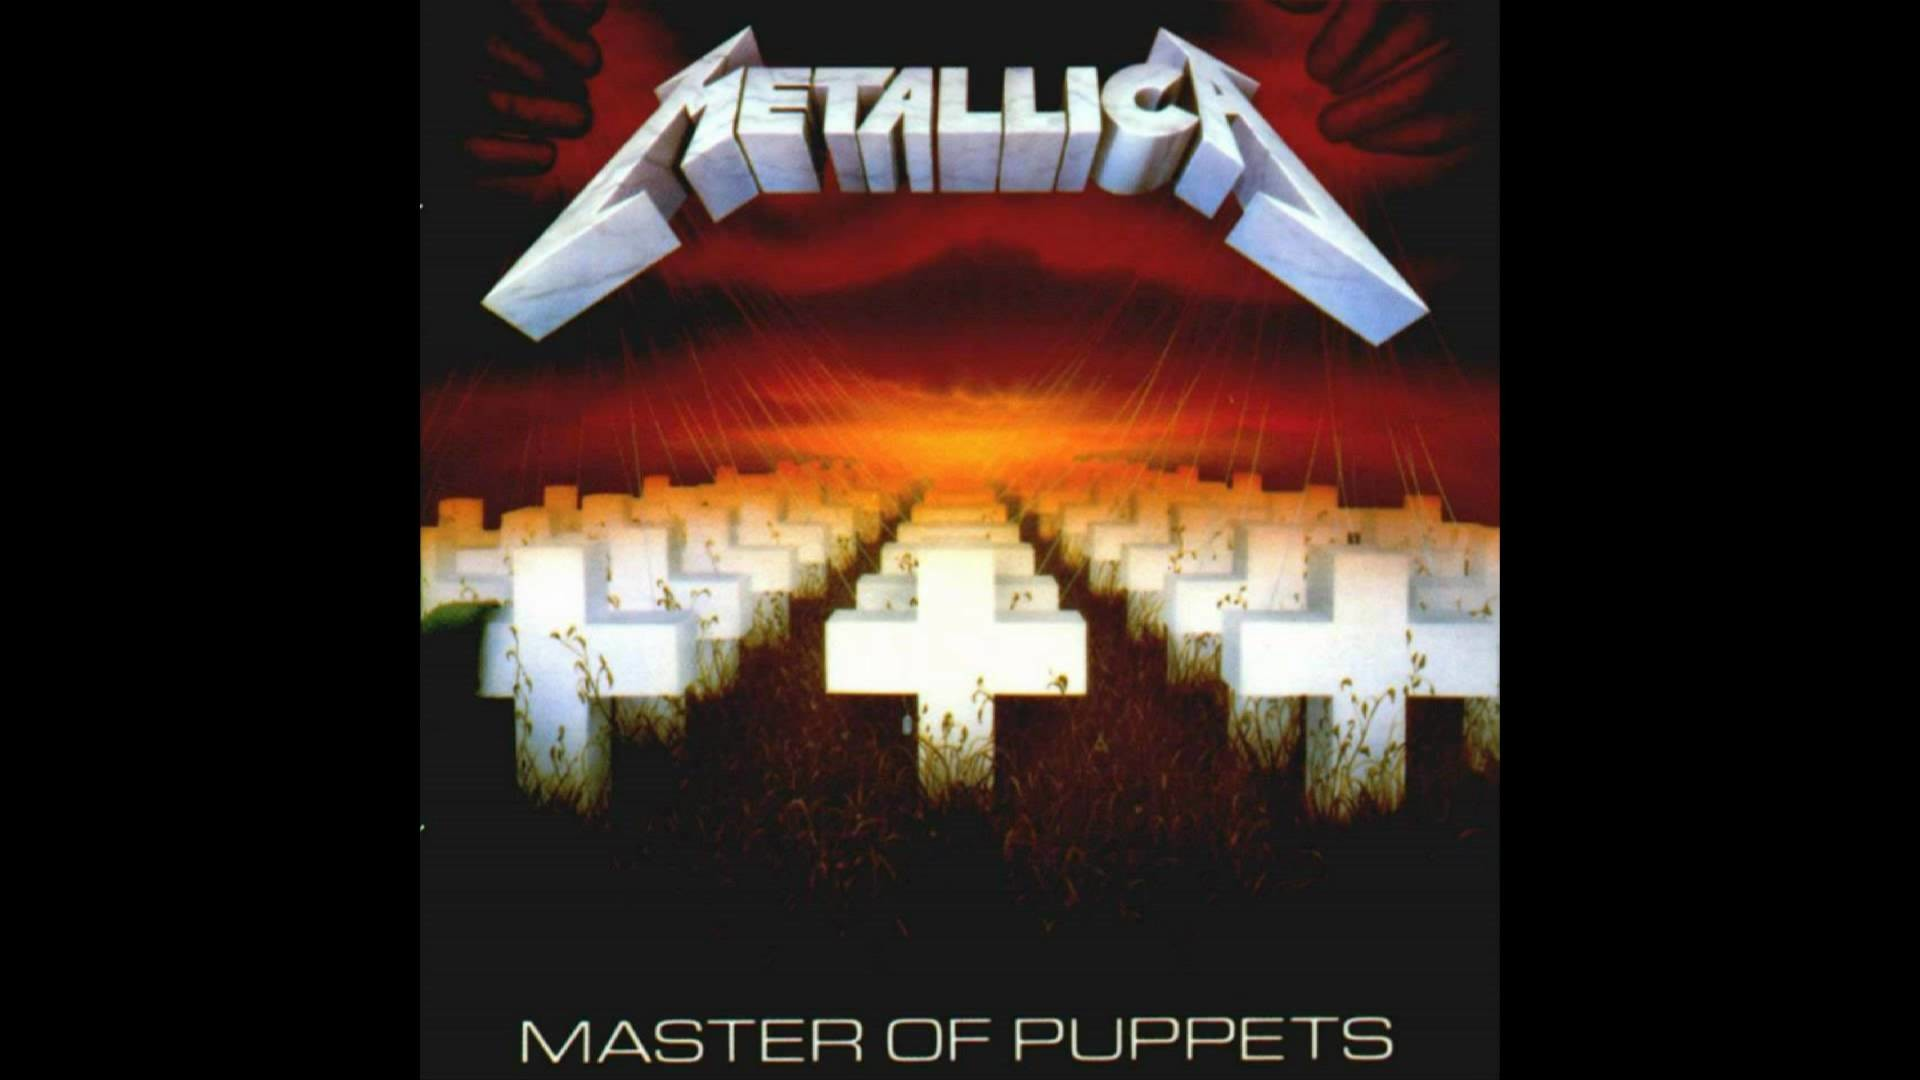 1920x1080 Metallica Master Of Puppets Wallpaper All